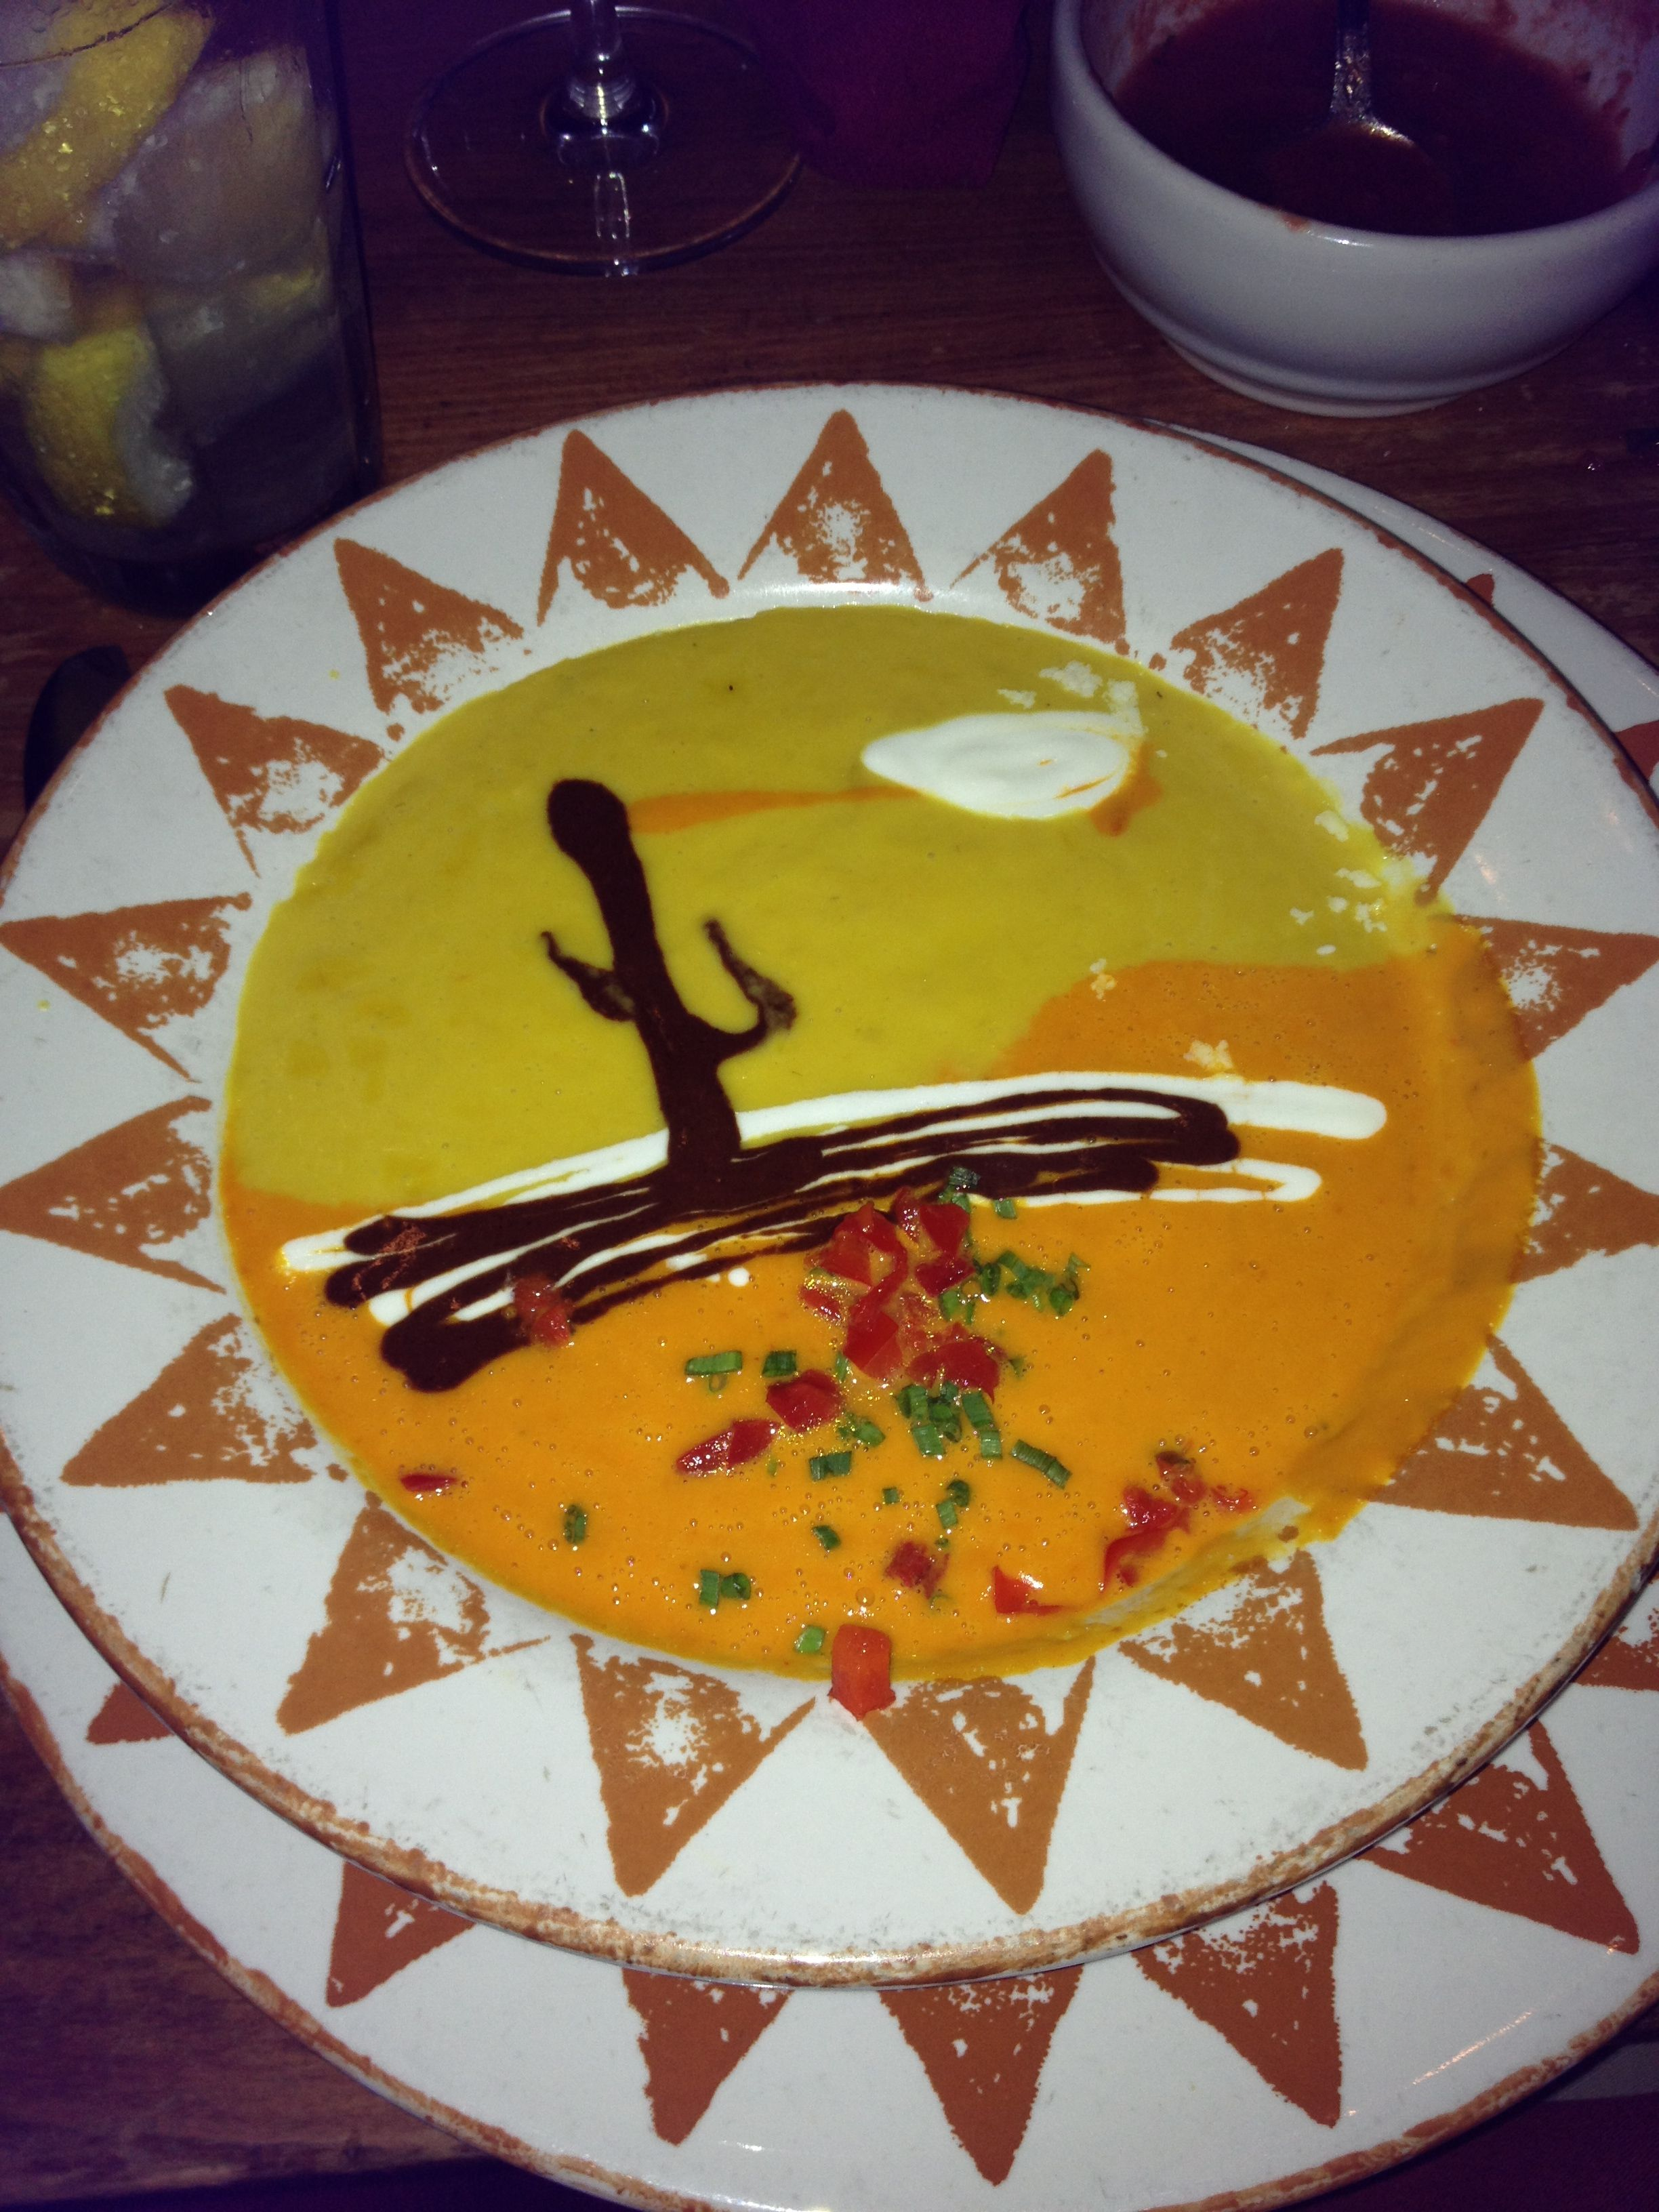 painted desert soup at santa fe cafe in hilton head island south